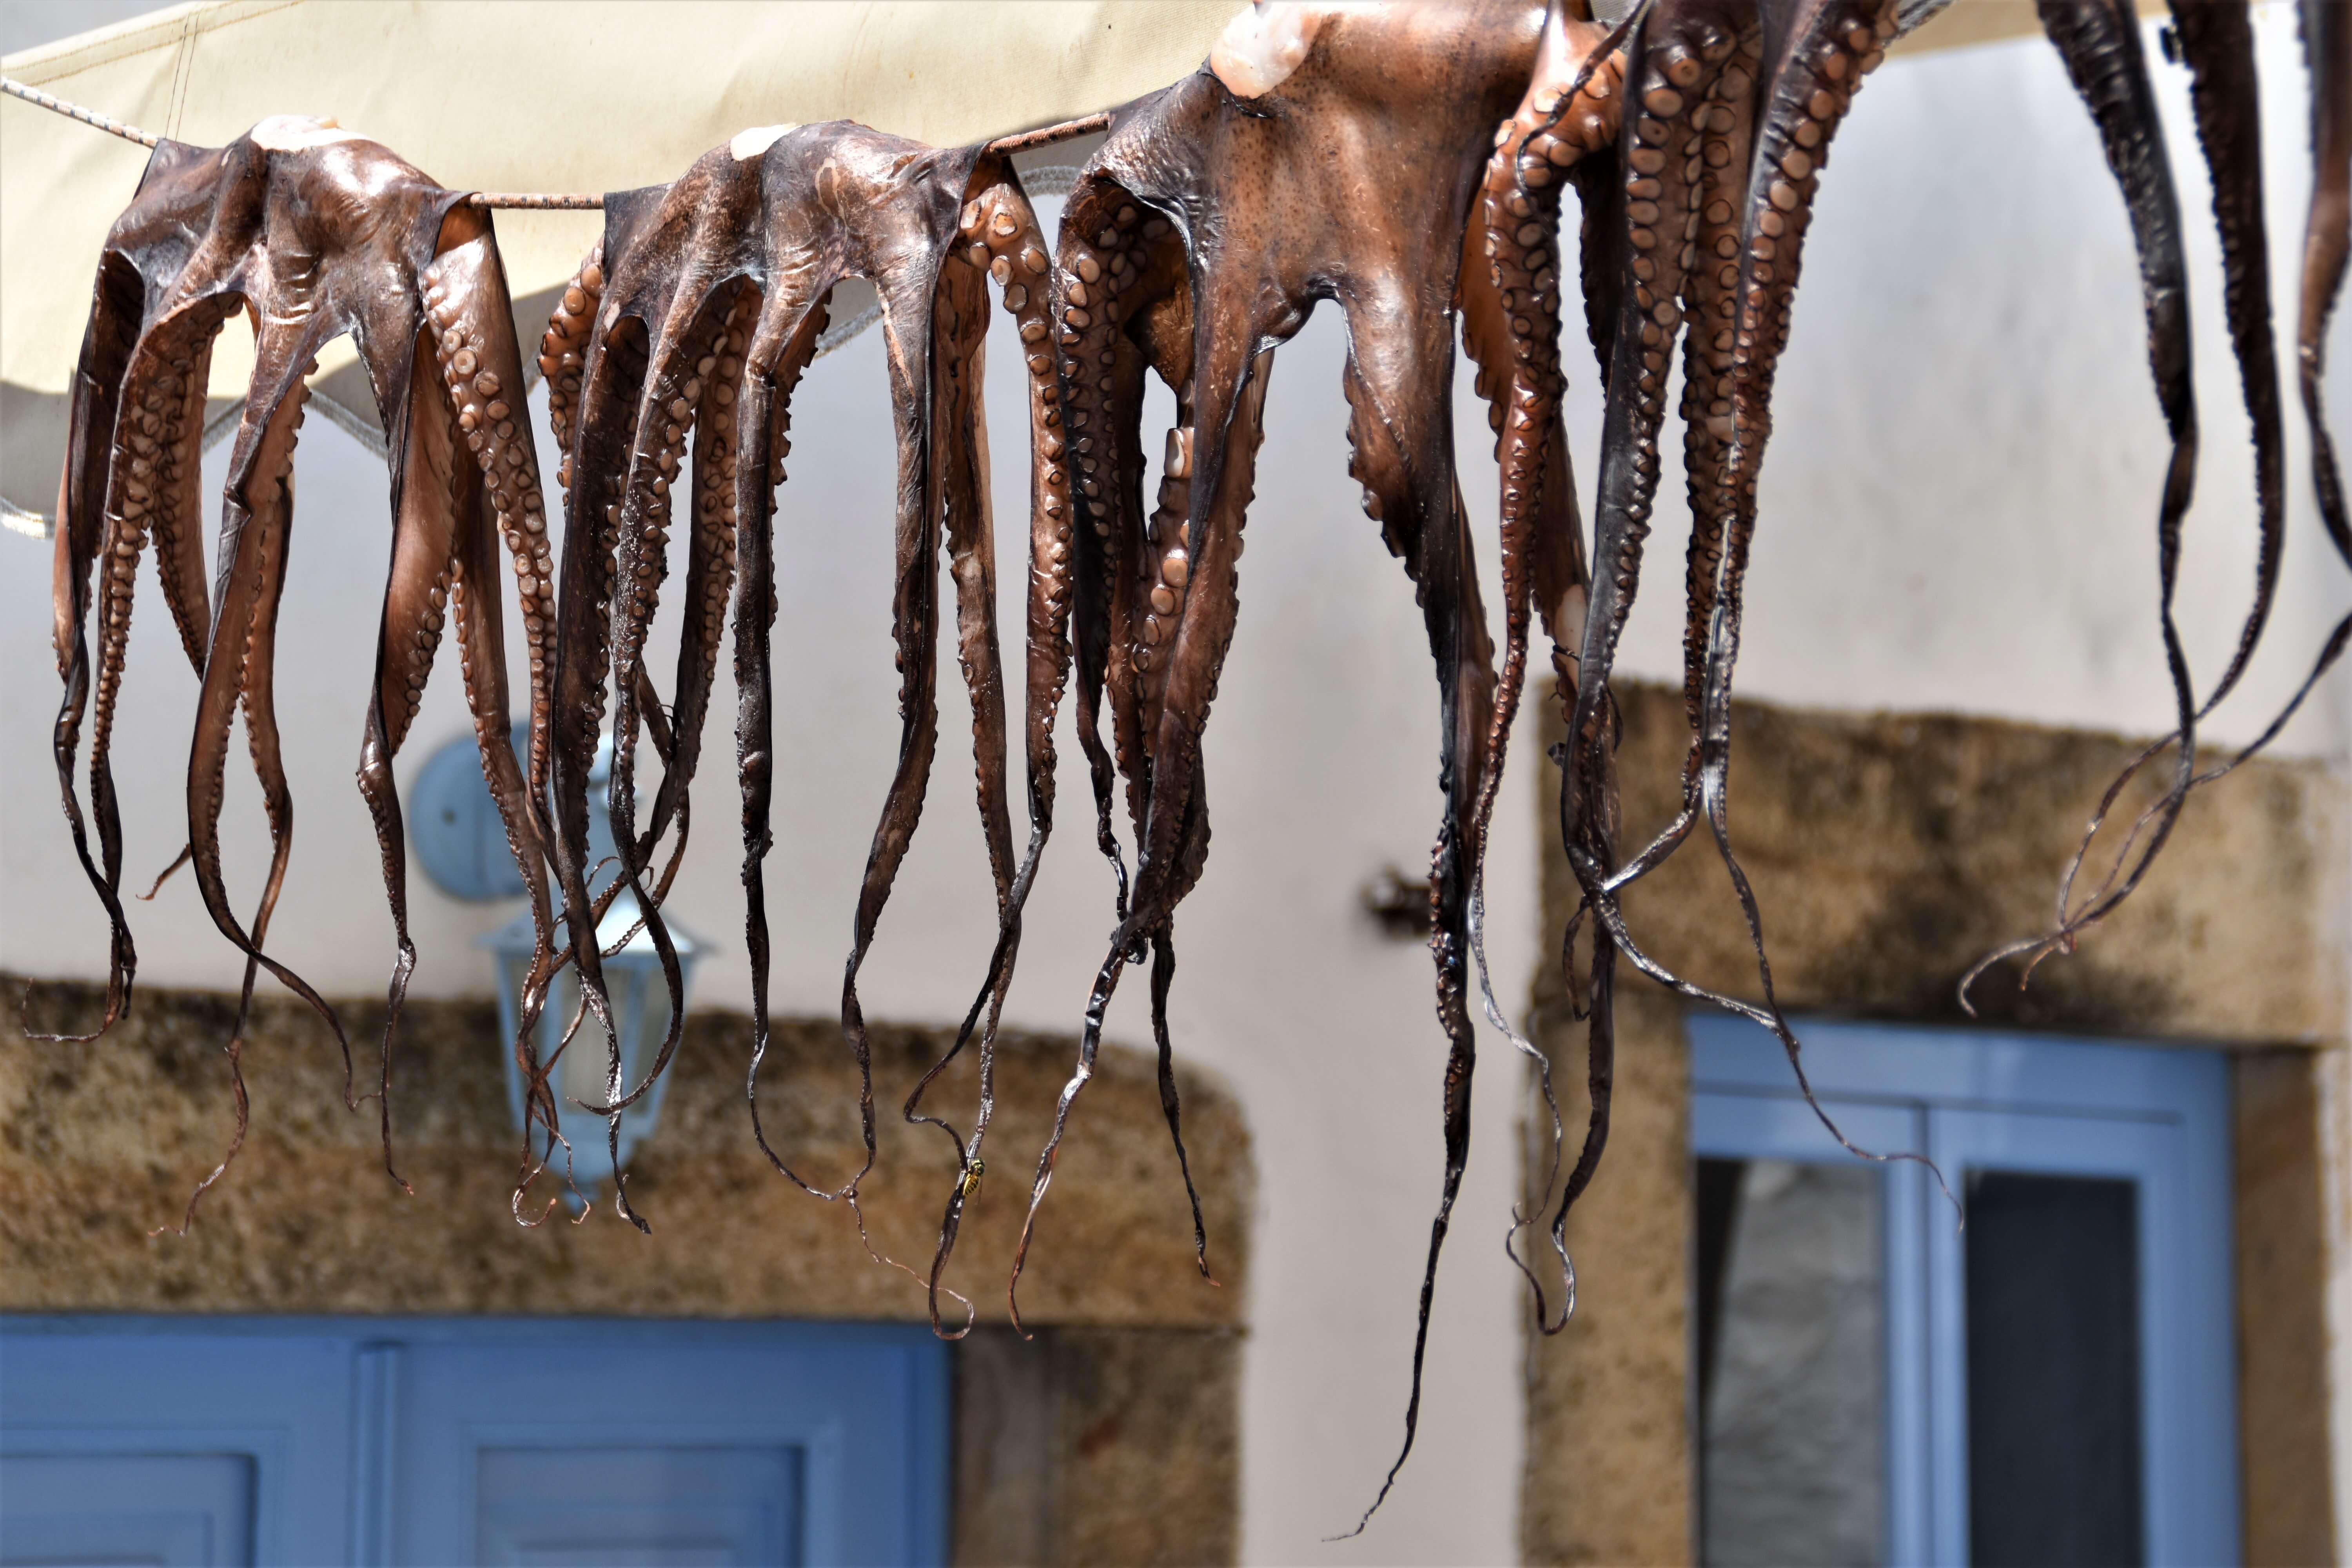 In a cloths line in the middle of a street, four octopuses are hung. In the background, the typical Greek white houses with blue doors and windows.